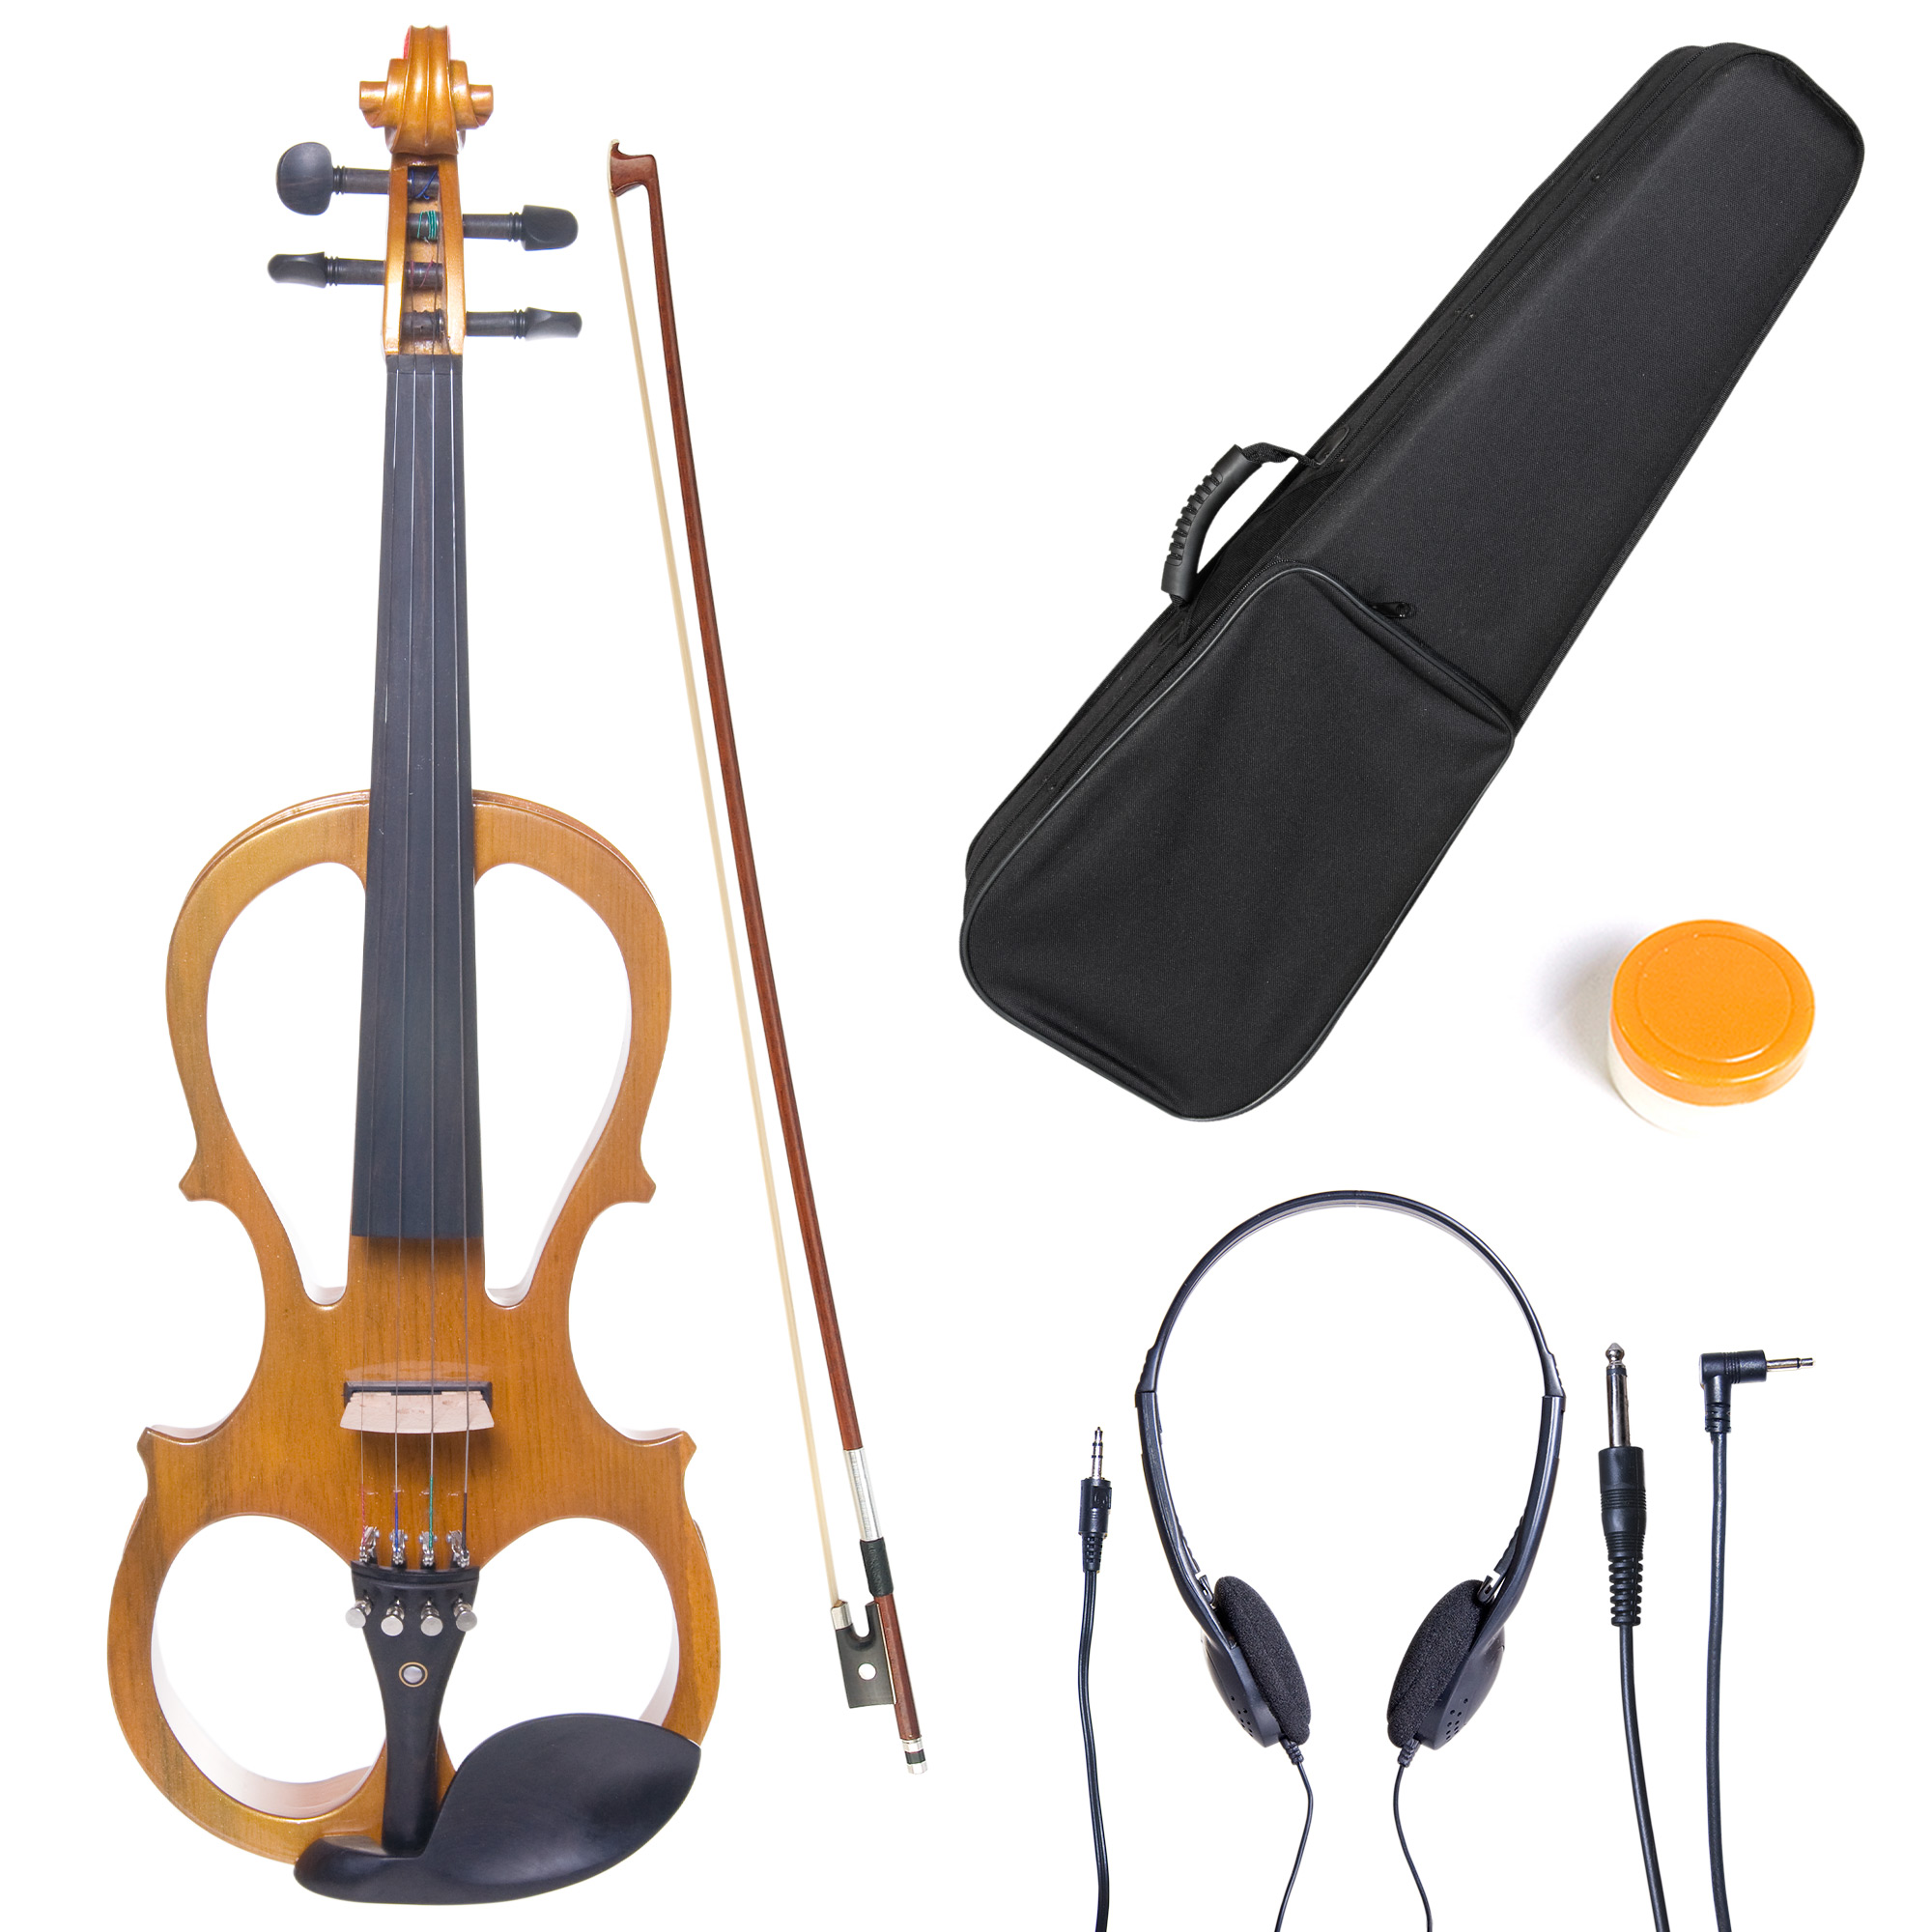 Cecilio Full Size Left-Handed Solid Wood Electric Silent Violin with Ebony Fittings-L4/4CEVN-L1Y Metallic Yellow Maple